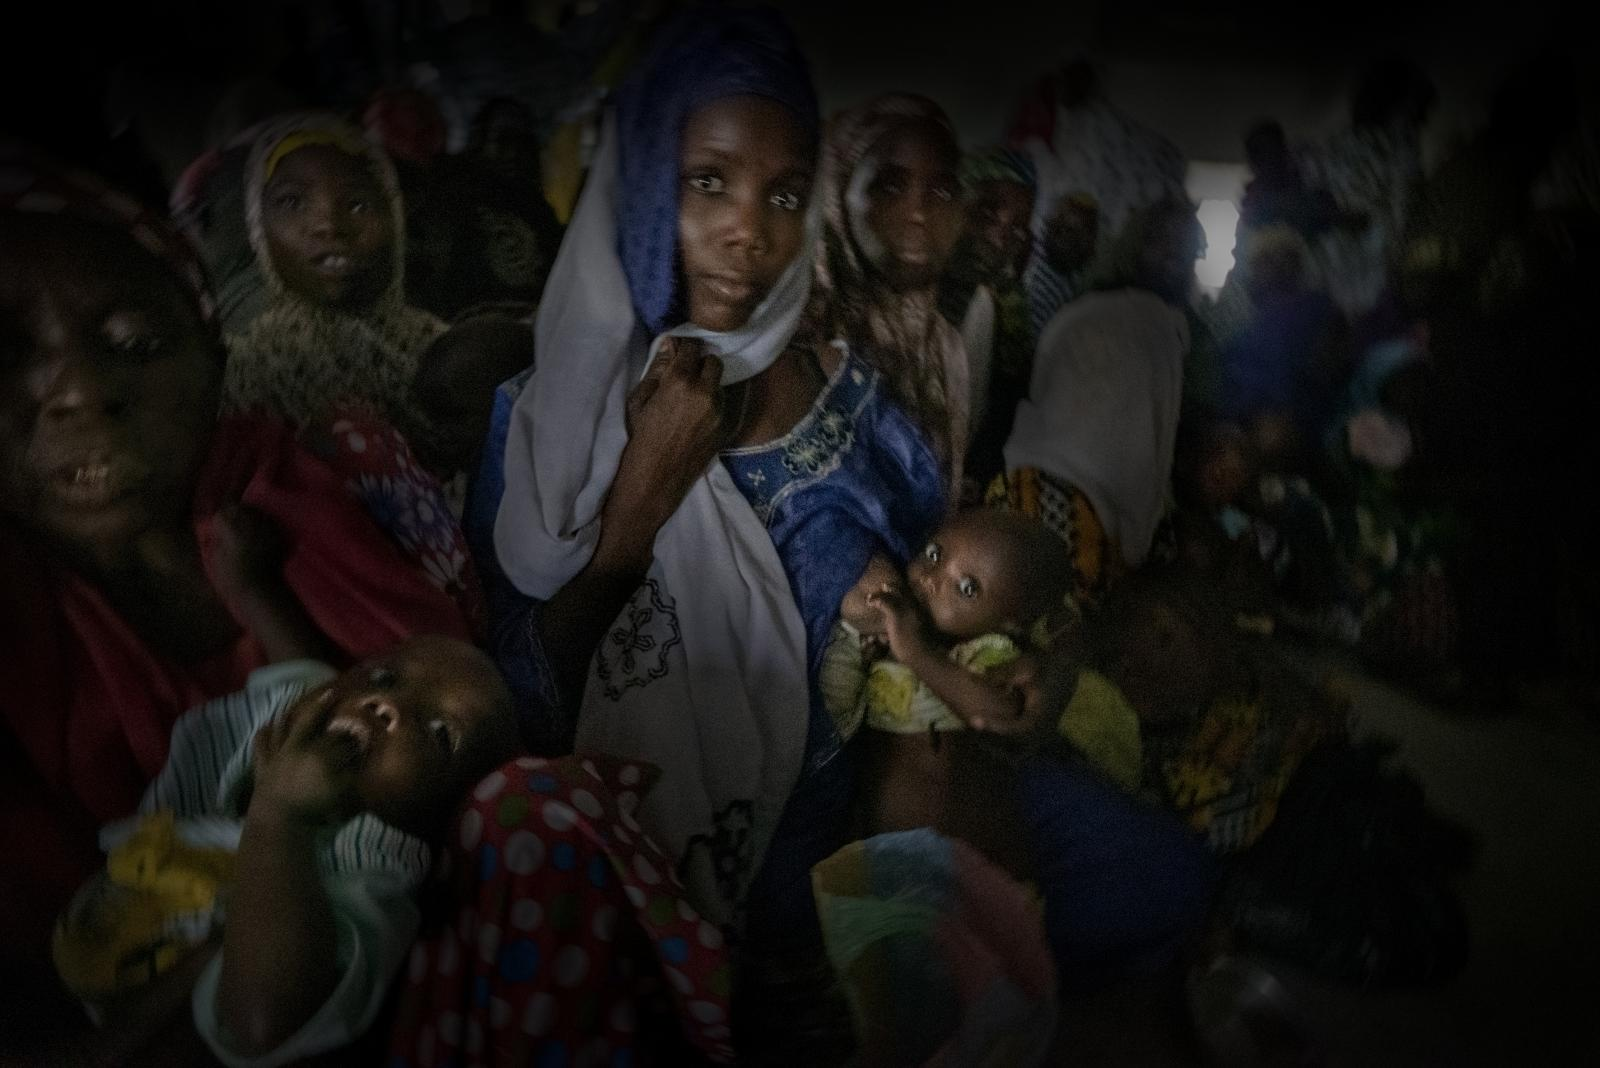 A woman feeds her child in a health centre in Borno. A large number of people here suffer from acute malnutrition due to the severe humanitarian crisis caused by the violence unleashed by the Boko Haram terrorist organisation (Nigeria).